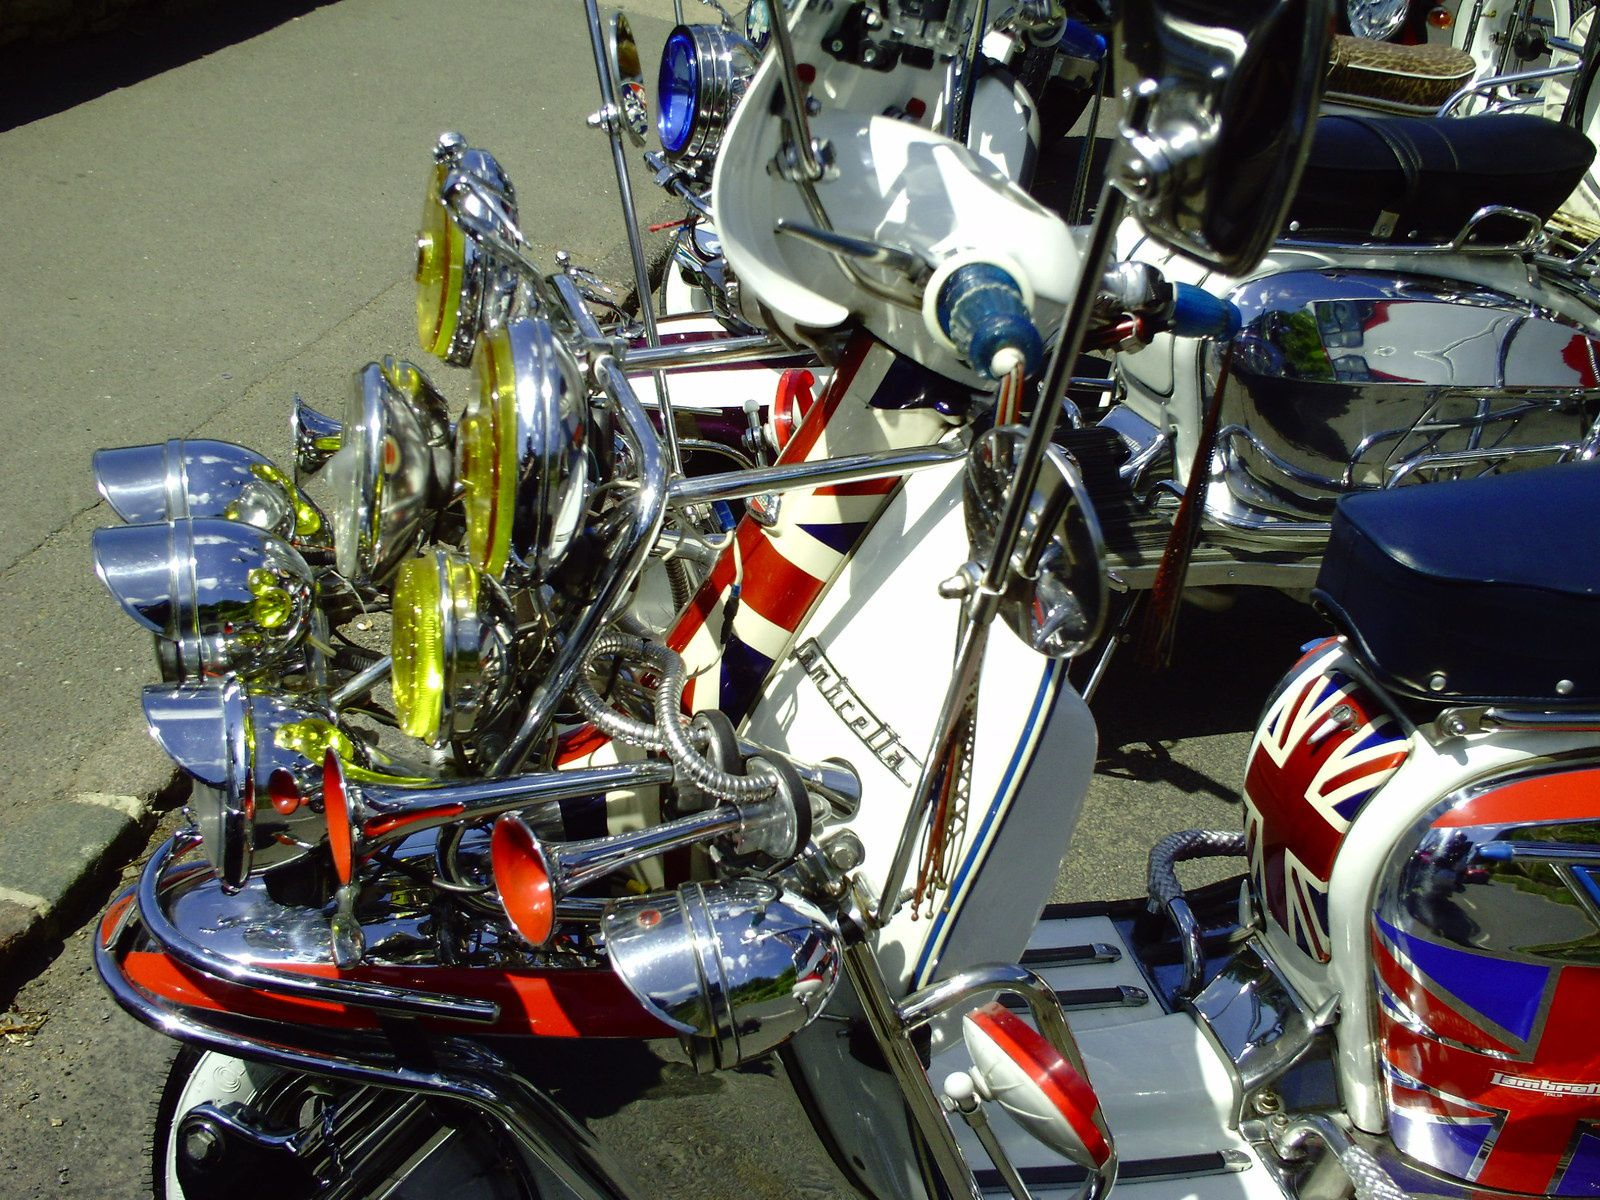 SO BRITISH......................J'AVAIS PRIS CE SCOOTER AU HARD ROCK CAFÉ DE FLORENCE